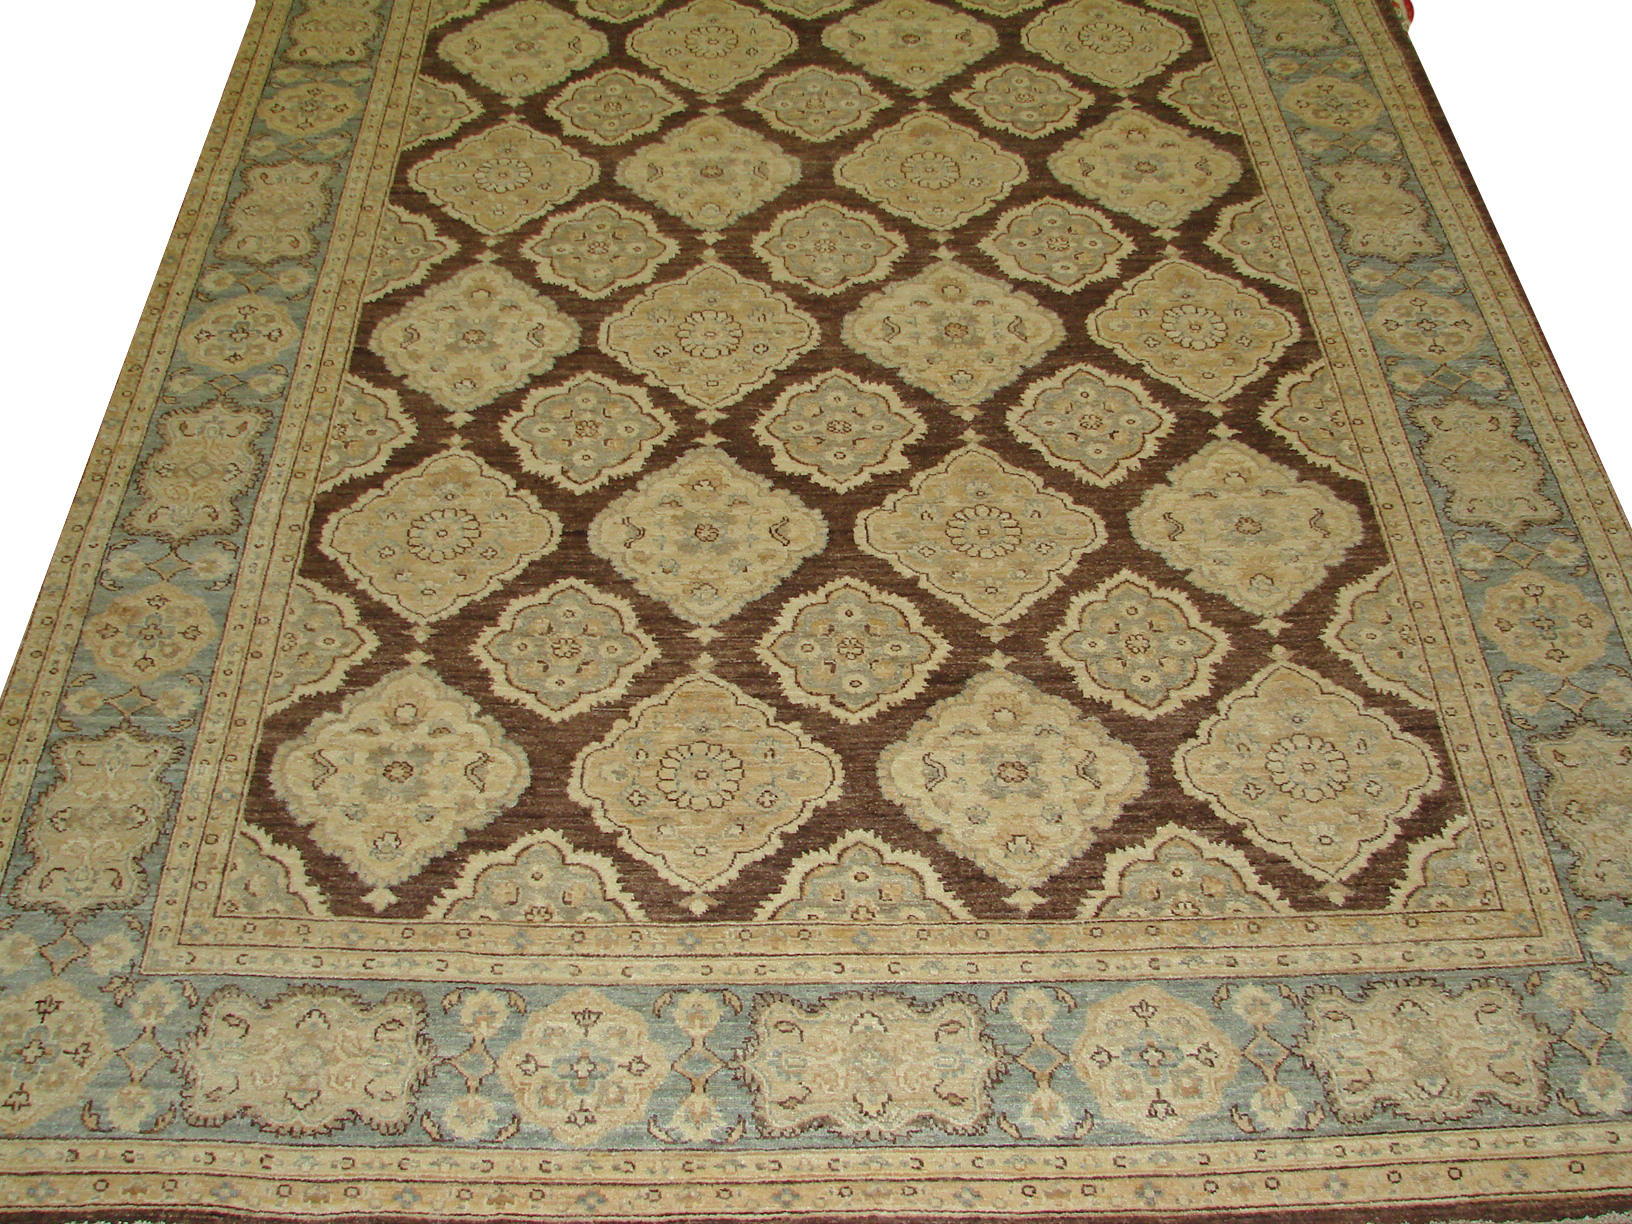 8x10 Peshawar Hand Knotted Wool Area Rug - MR14371